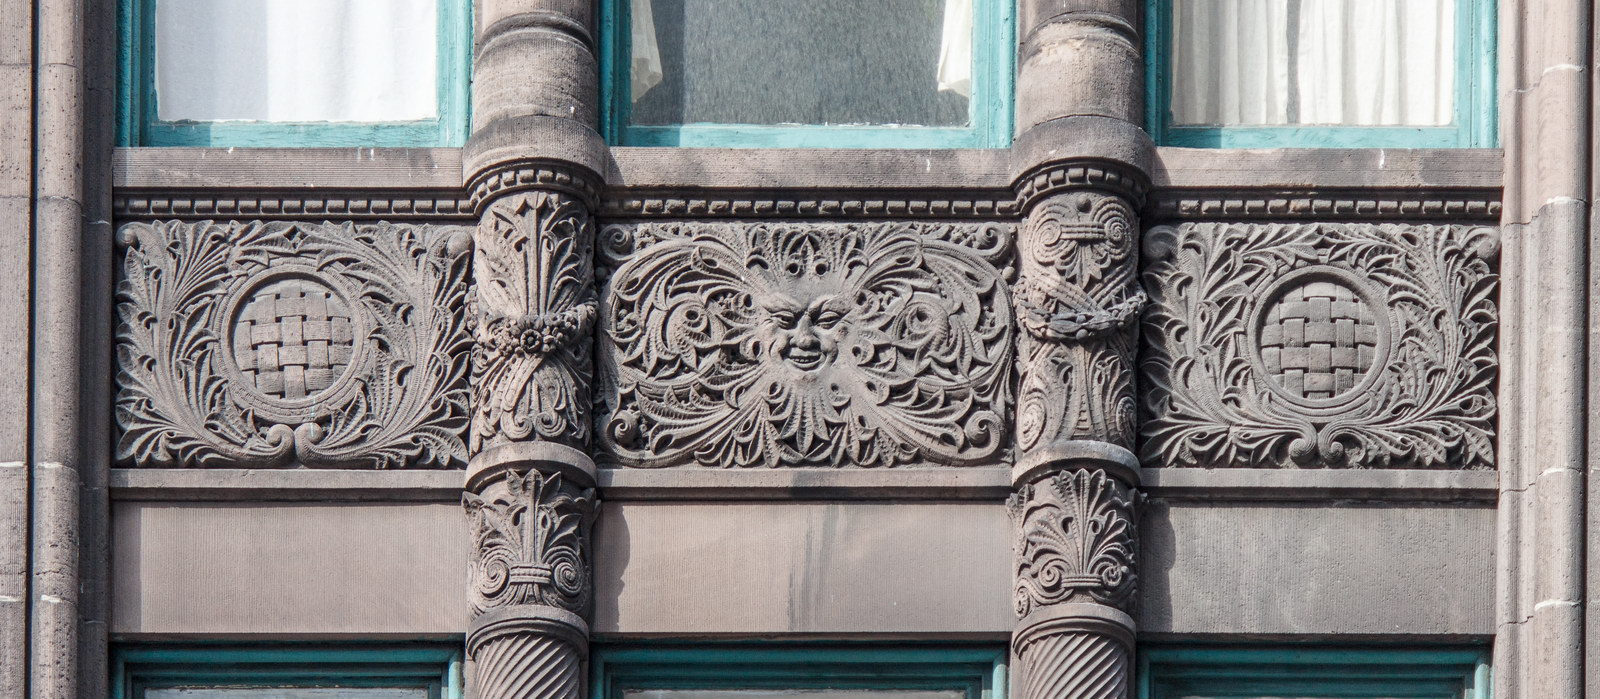 Wider spandrels on Fifth Avenue facade.